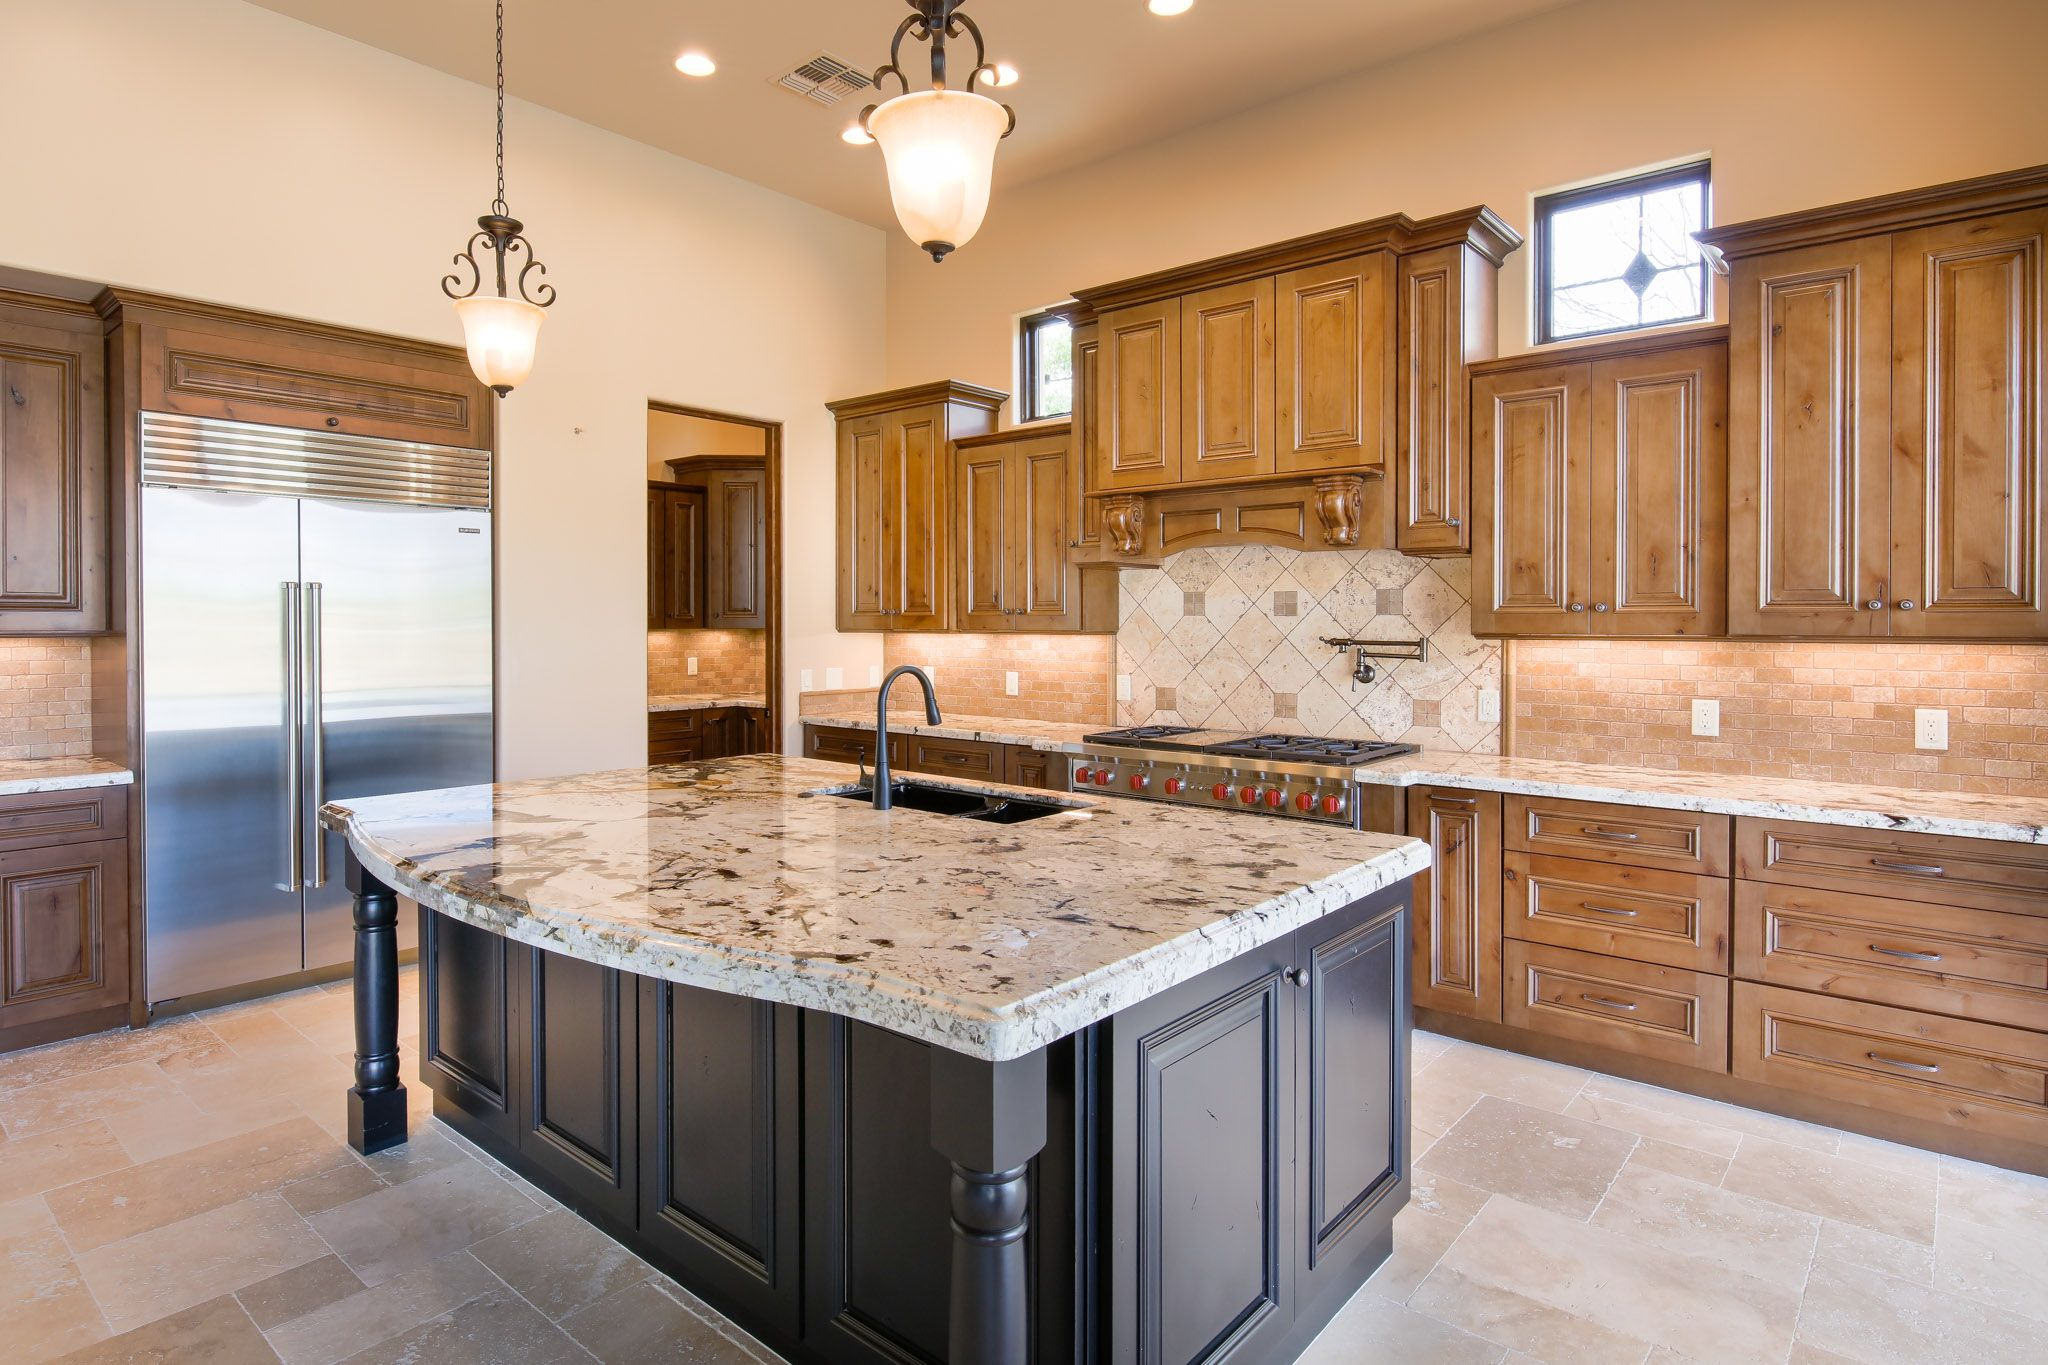 Design Your Kitchen With Wood Stained Cabinets And An Accent Painted Island Like This One Sh Stained Kitchen Cabinets Custom Kitchen Cabinets Staining Cabinets